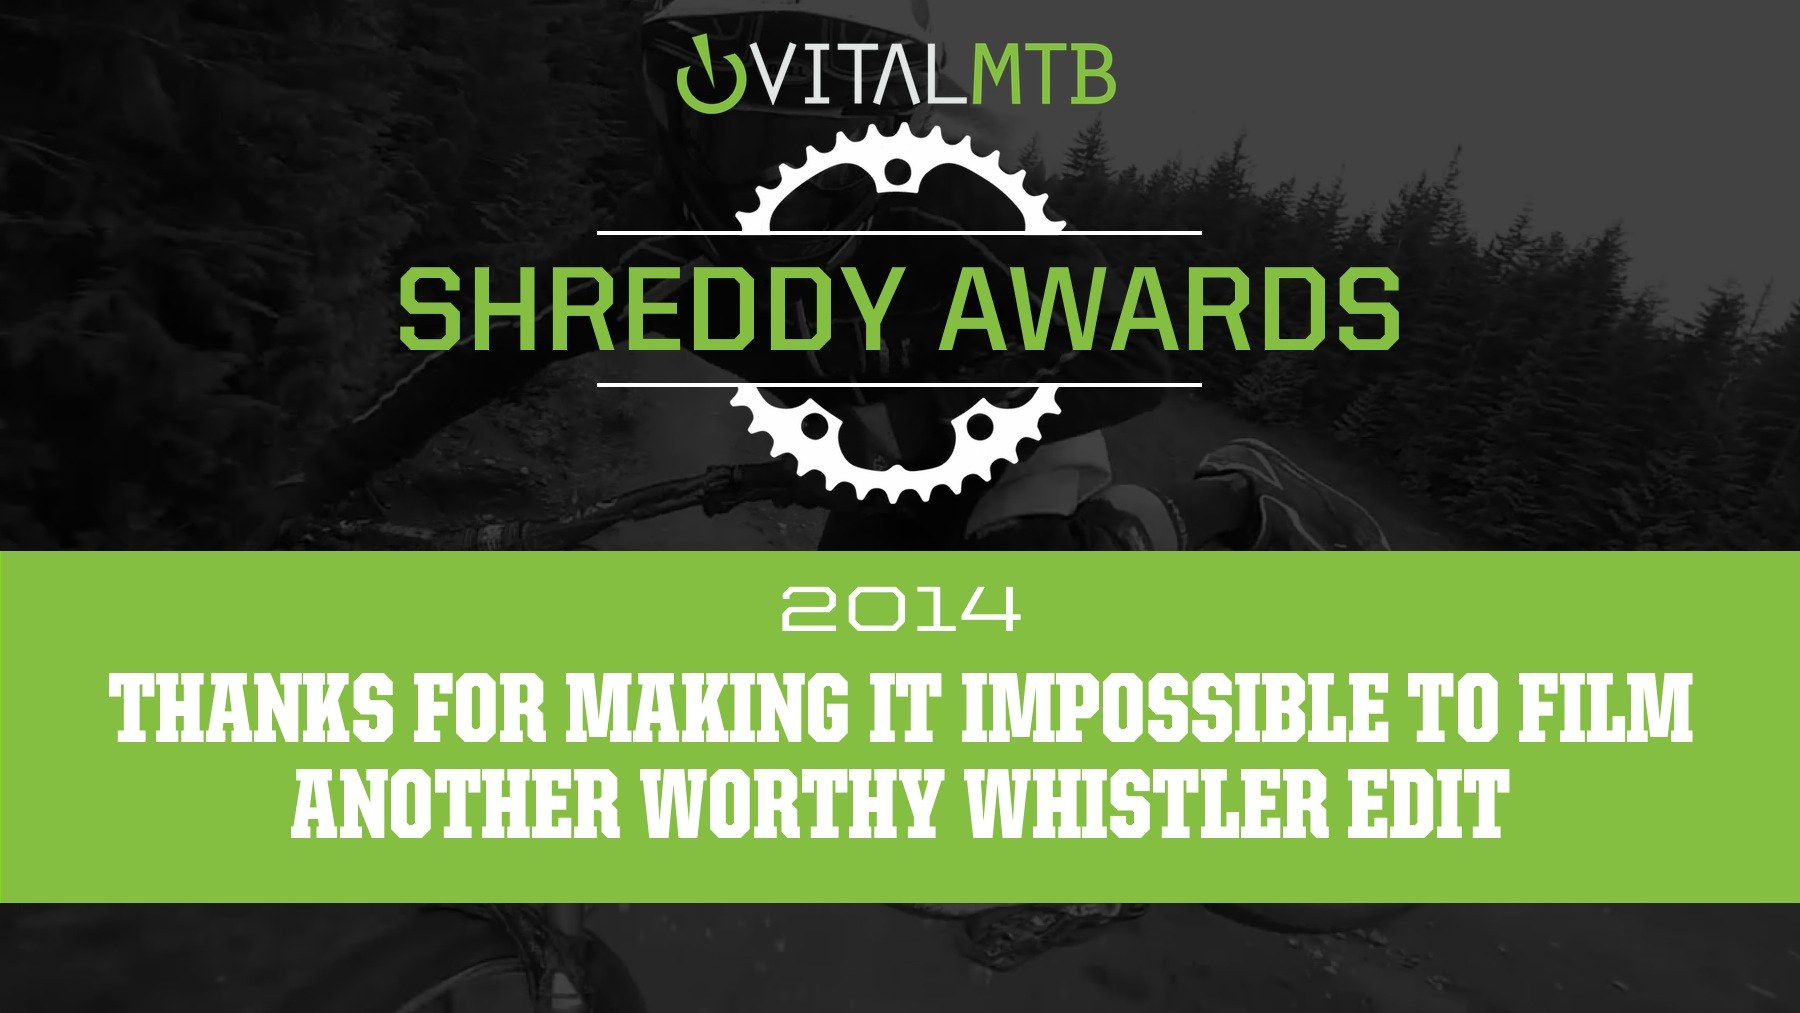 2014 Thanks-for-Making-it-Impossible-to-Film-Another-Worthy-Whistler-Edit - Vital MTB Shreddy Awards